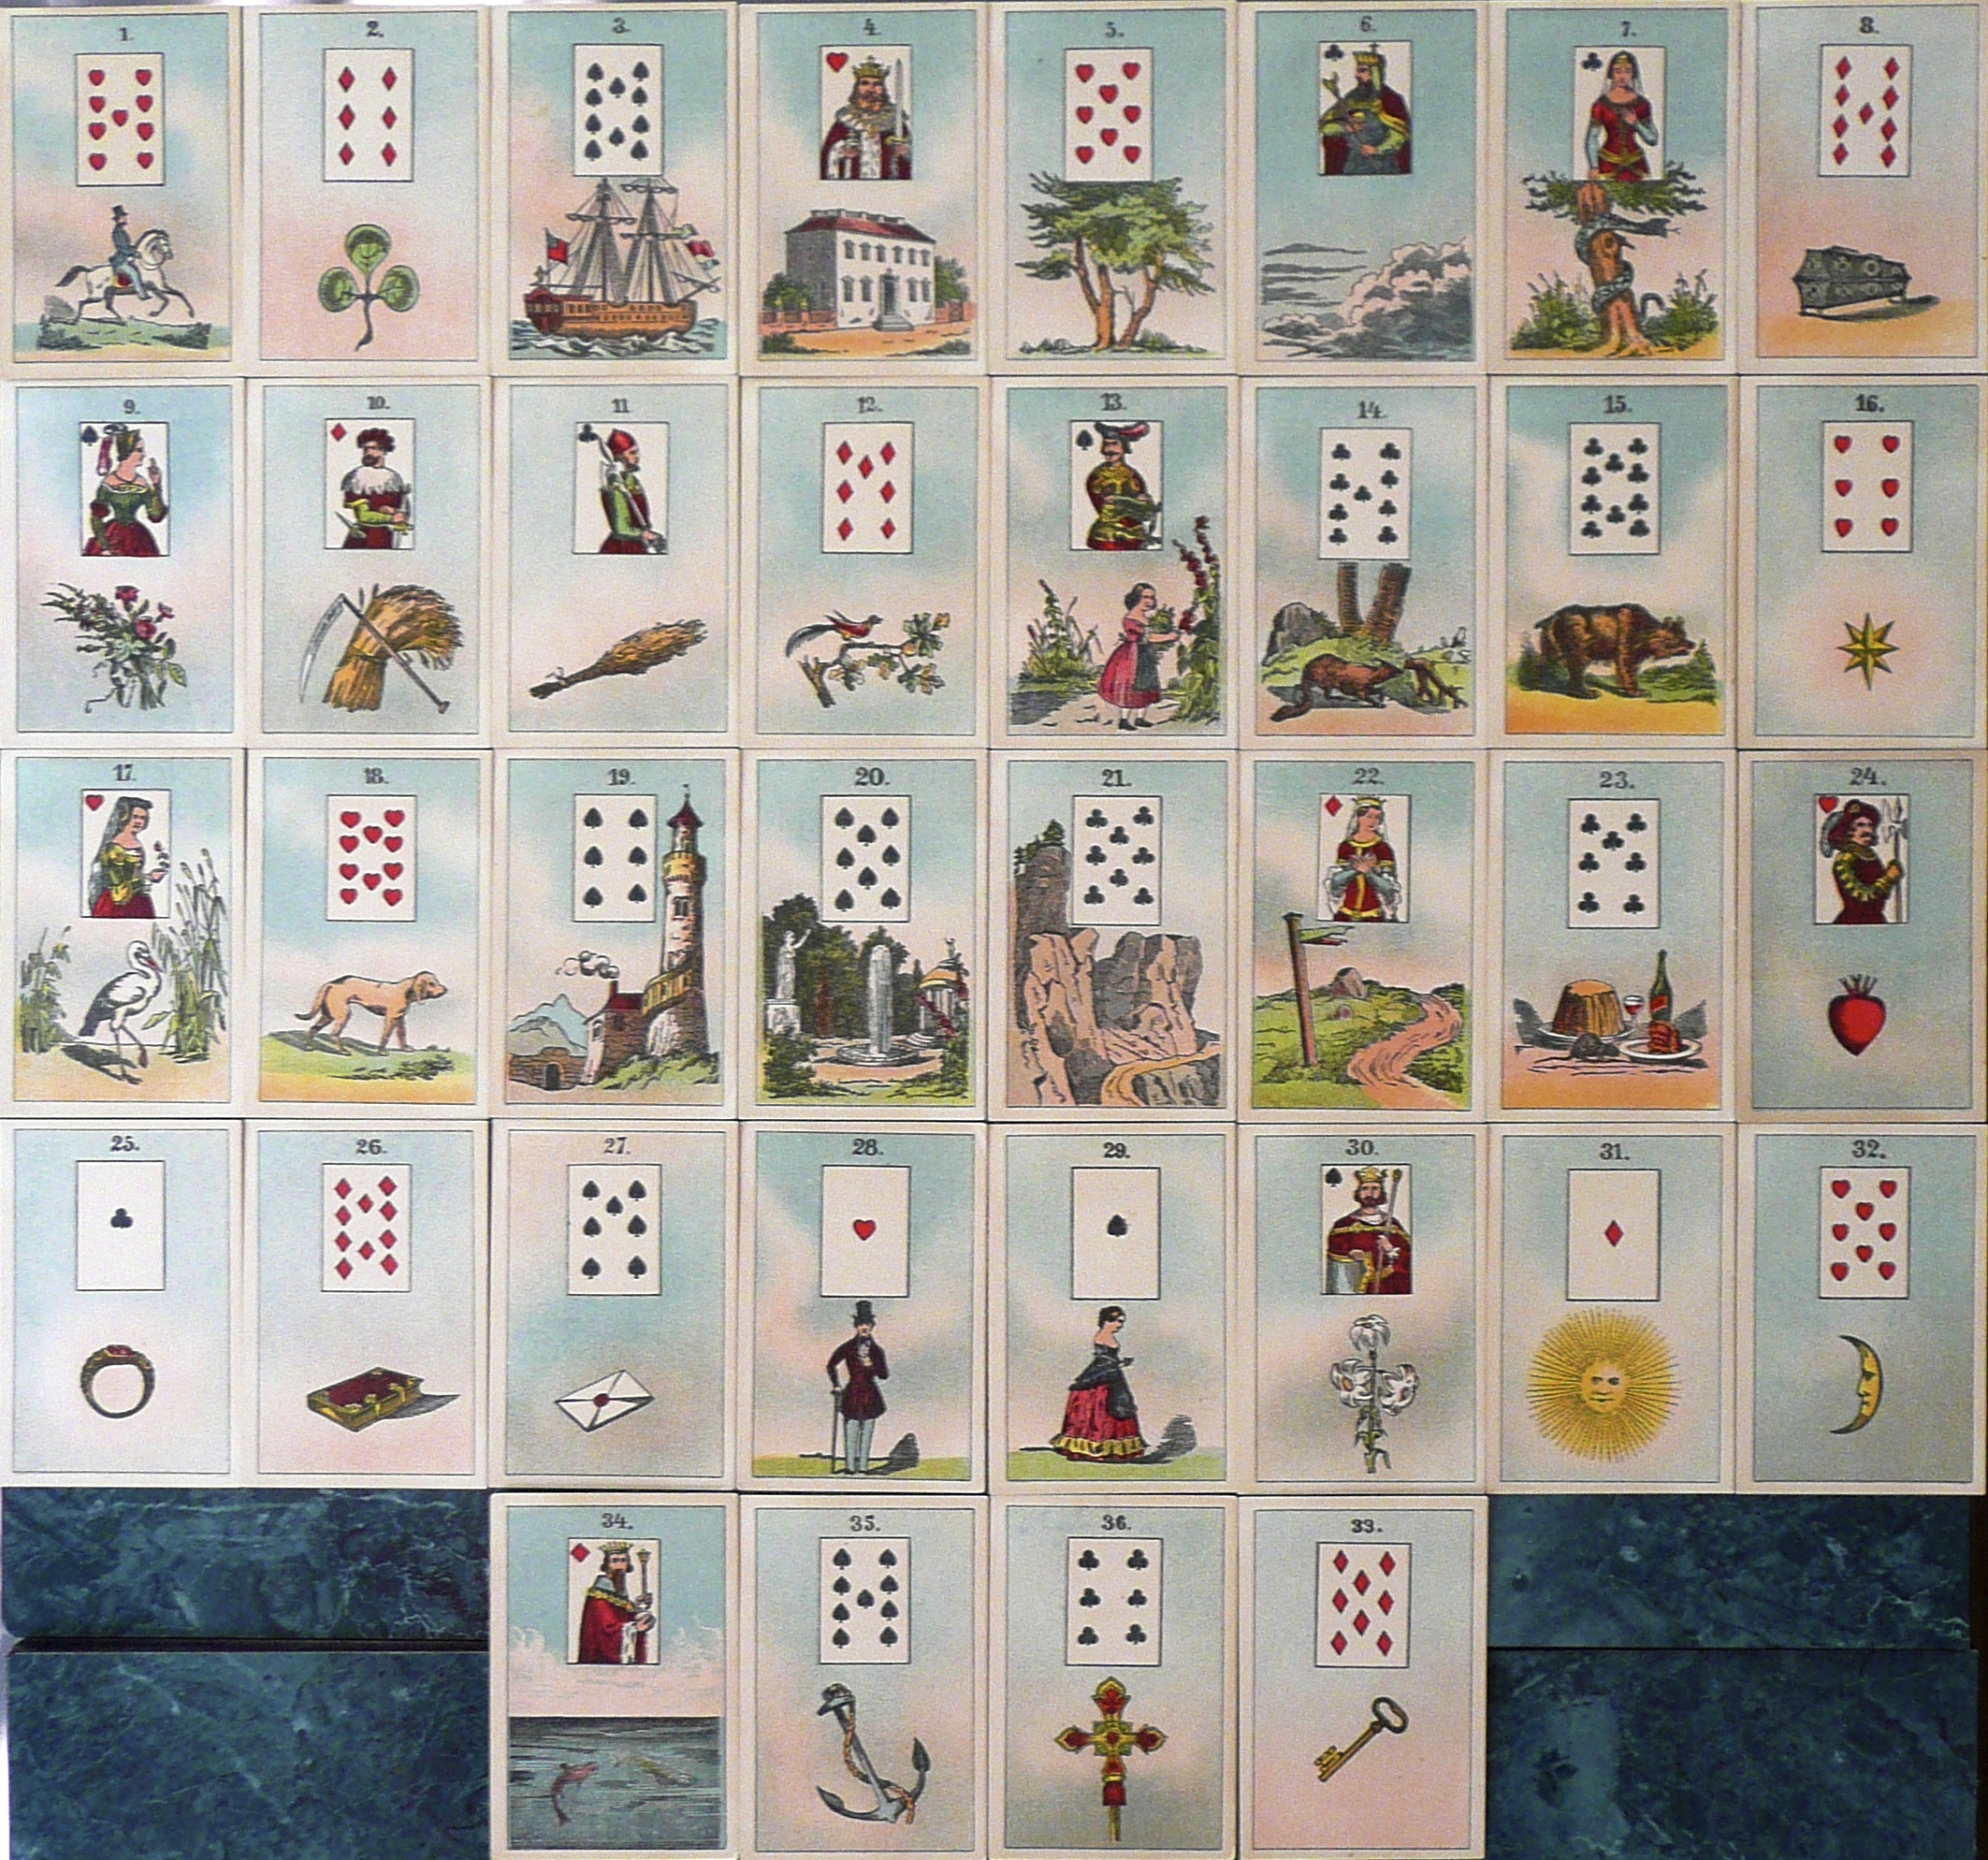 Lenormand | Mary K. Greer's Tarot Blog - Free Printable Lenormand Cards